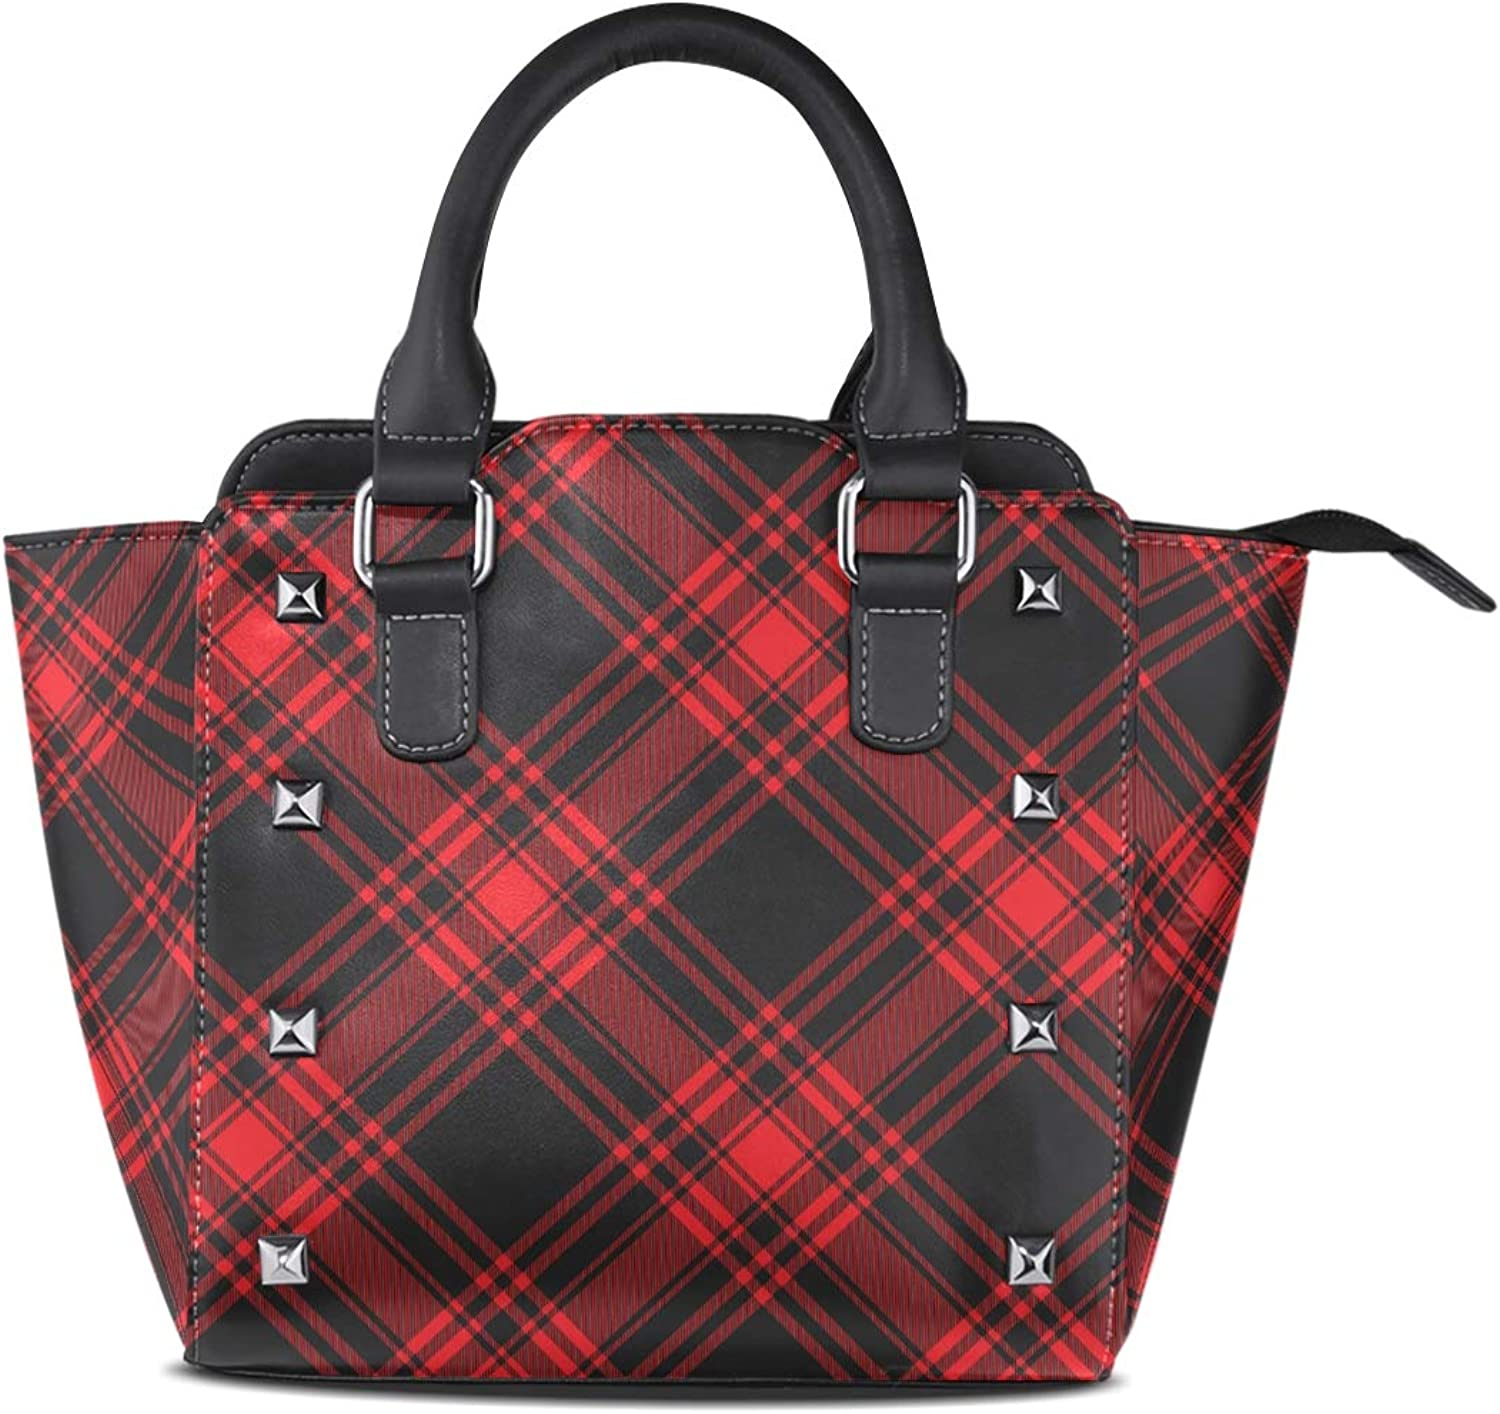 My Little Nest Women's Top Handle Satchel Handbag Black Red Tartan Pattern Ladies PU Leather Shoulder Bag Crossbody Bag